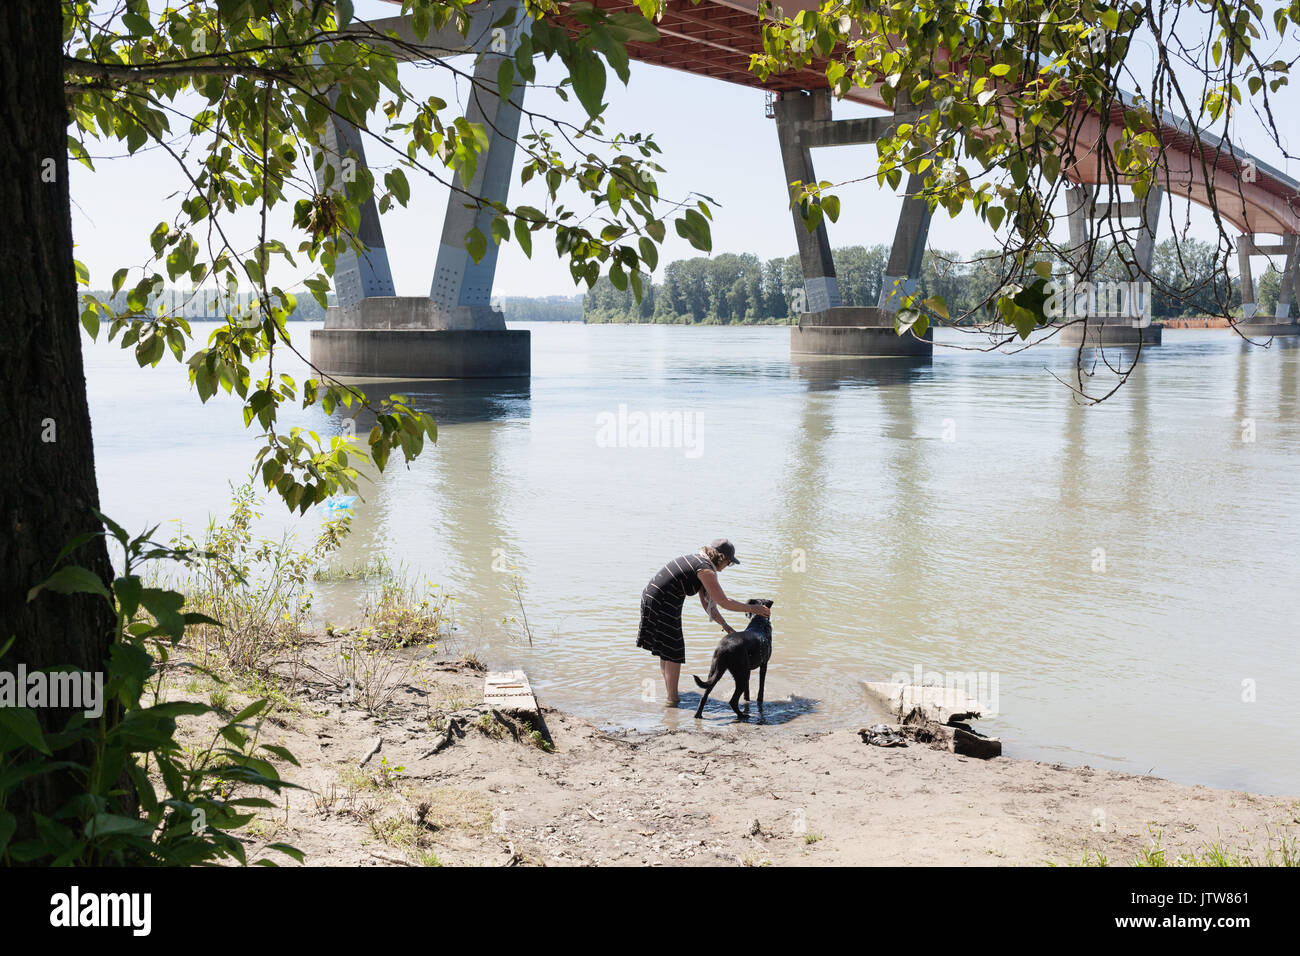 Woman cooling down her dog at river on hot day.   Mission, BC Canada - Stock Image